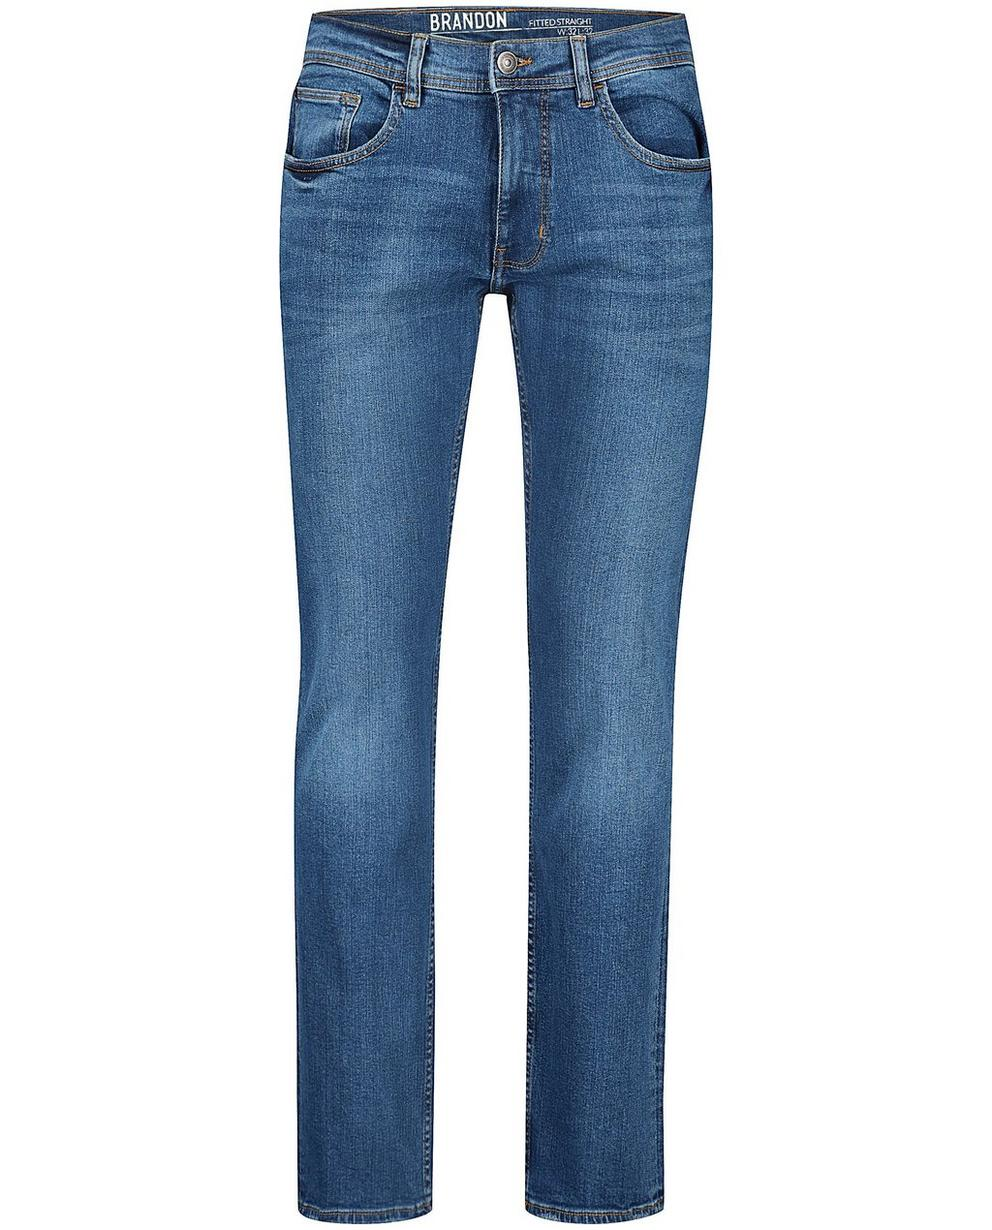 Jeans - aqua - Jeans fitted straight